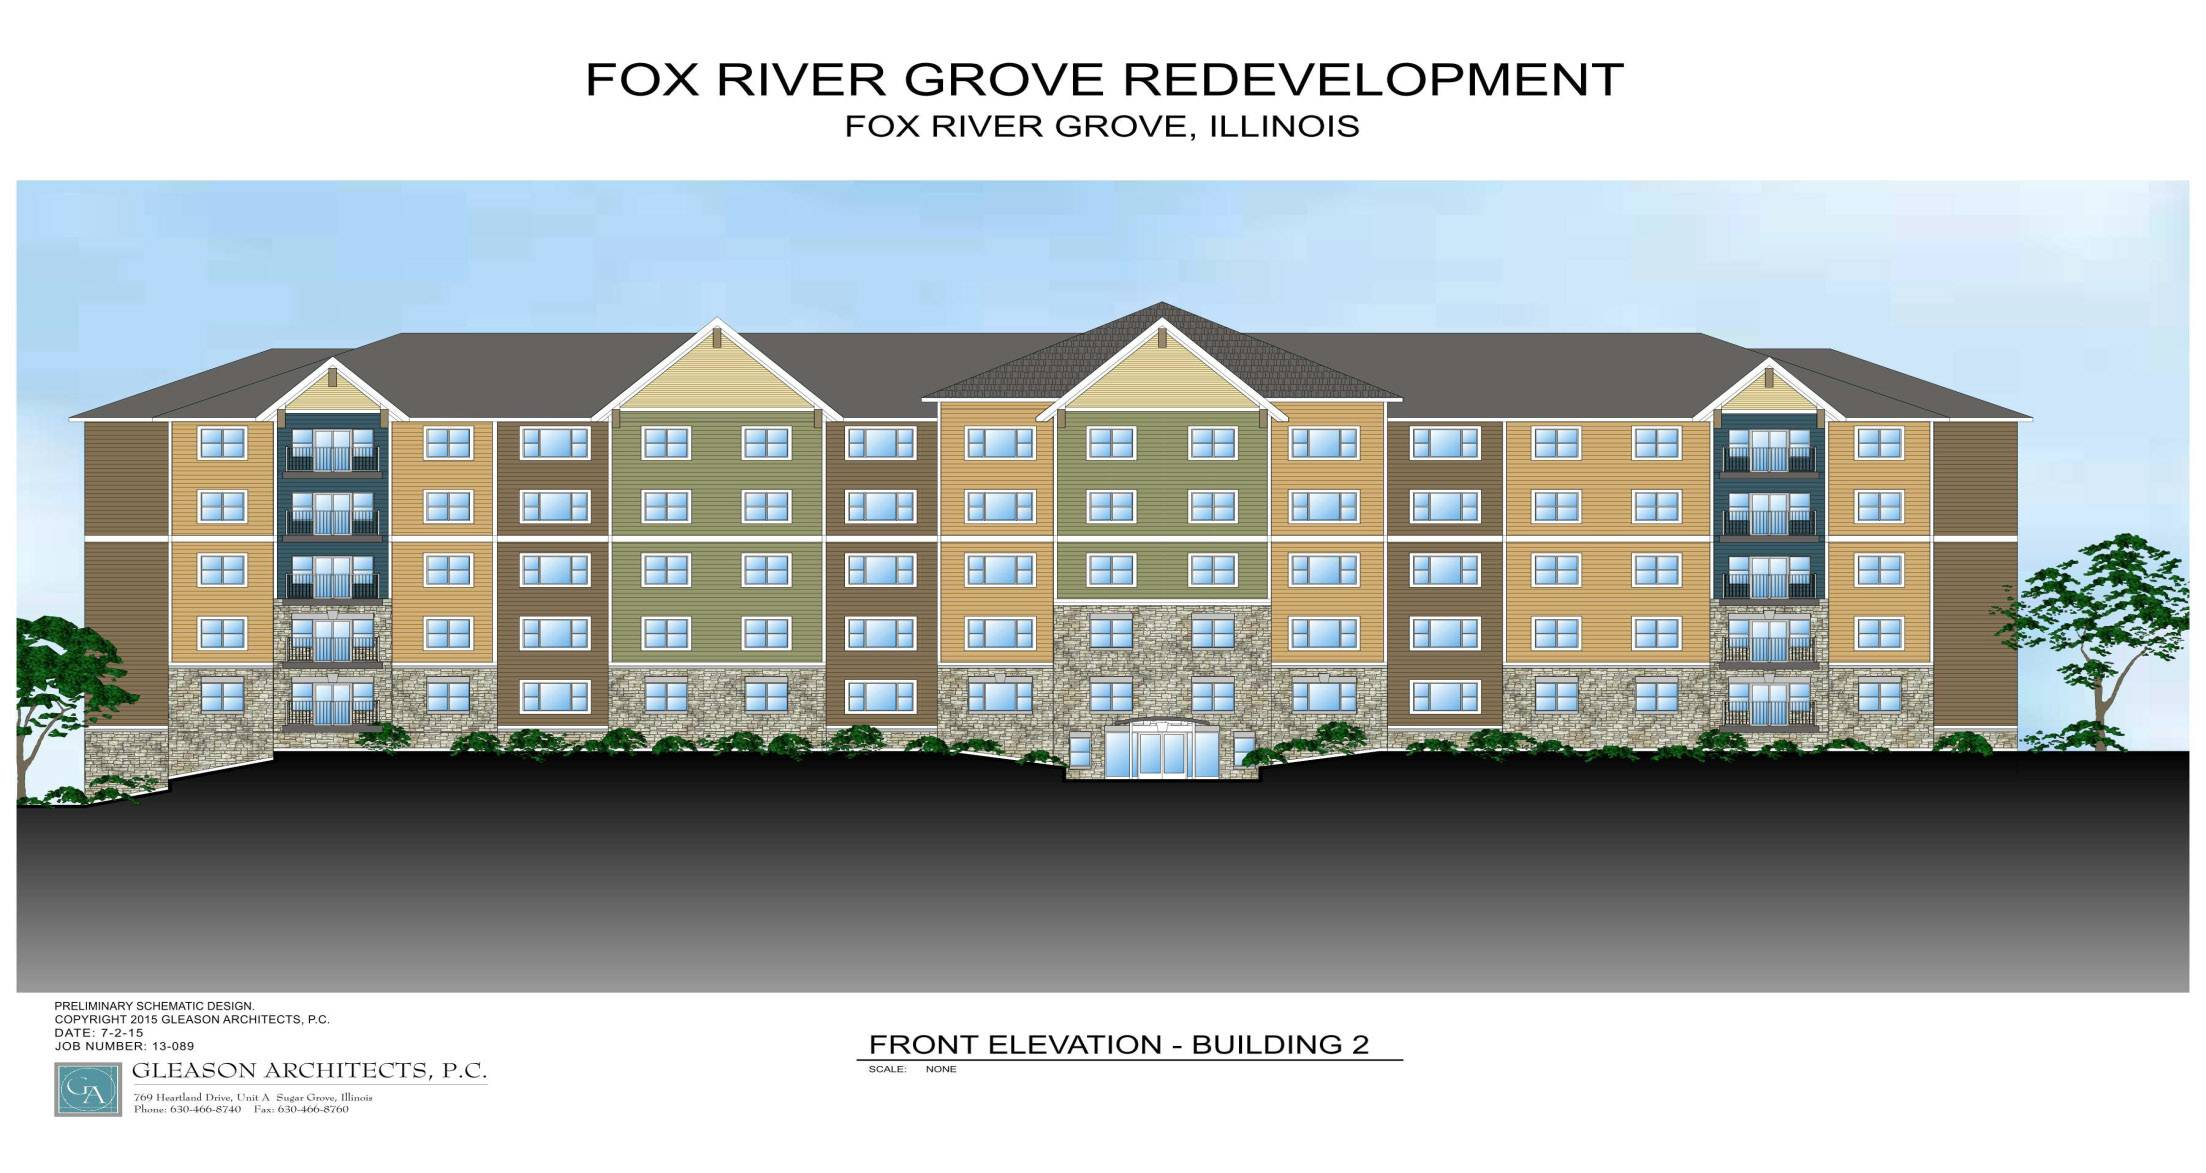 A rendering of a multifamily residential apartment building proposed as part of a Fox River Grove's downtown redevelopment plan. The 20-acre redevelopment project has stalled due to financing problems.